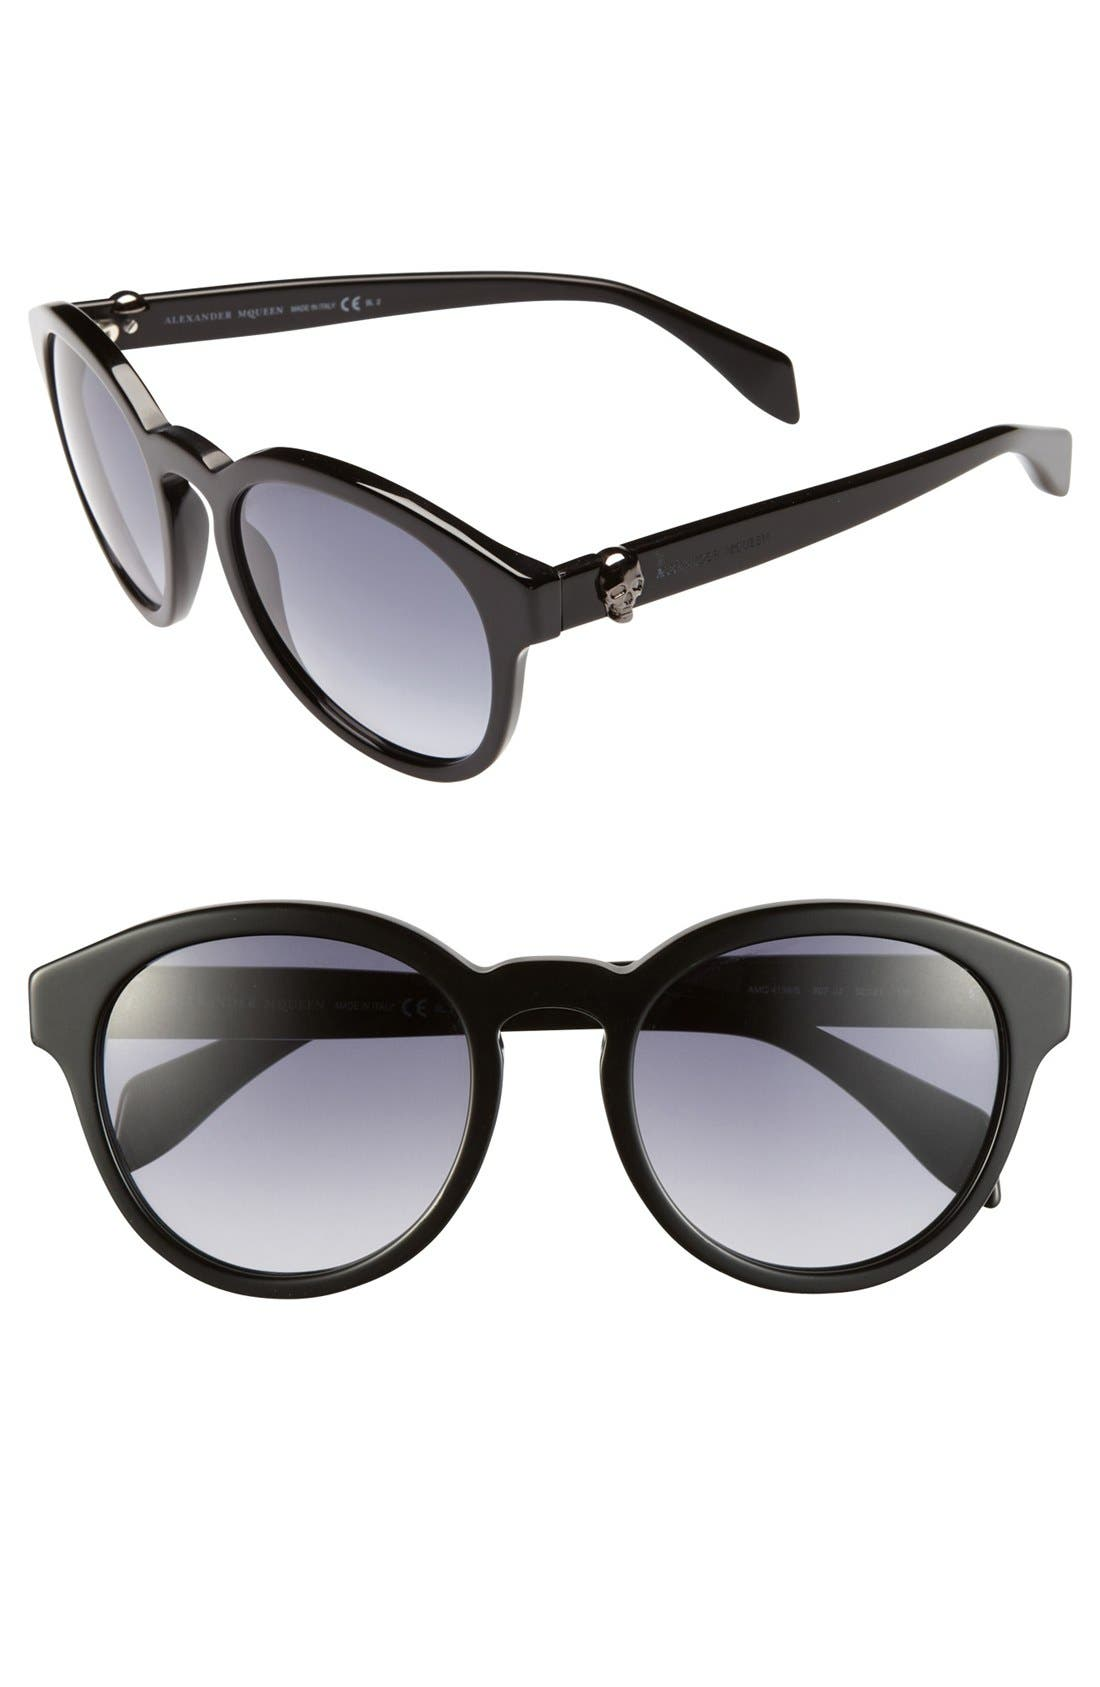 Main Image - Alexander McQueen 52mm Sunglasses